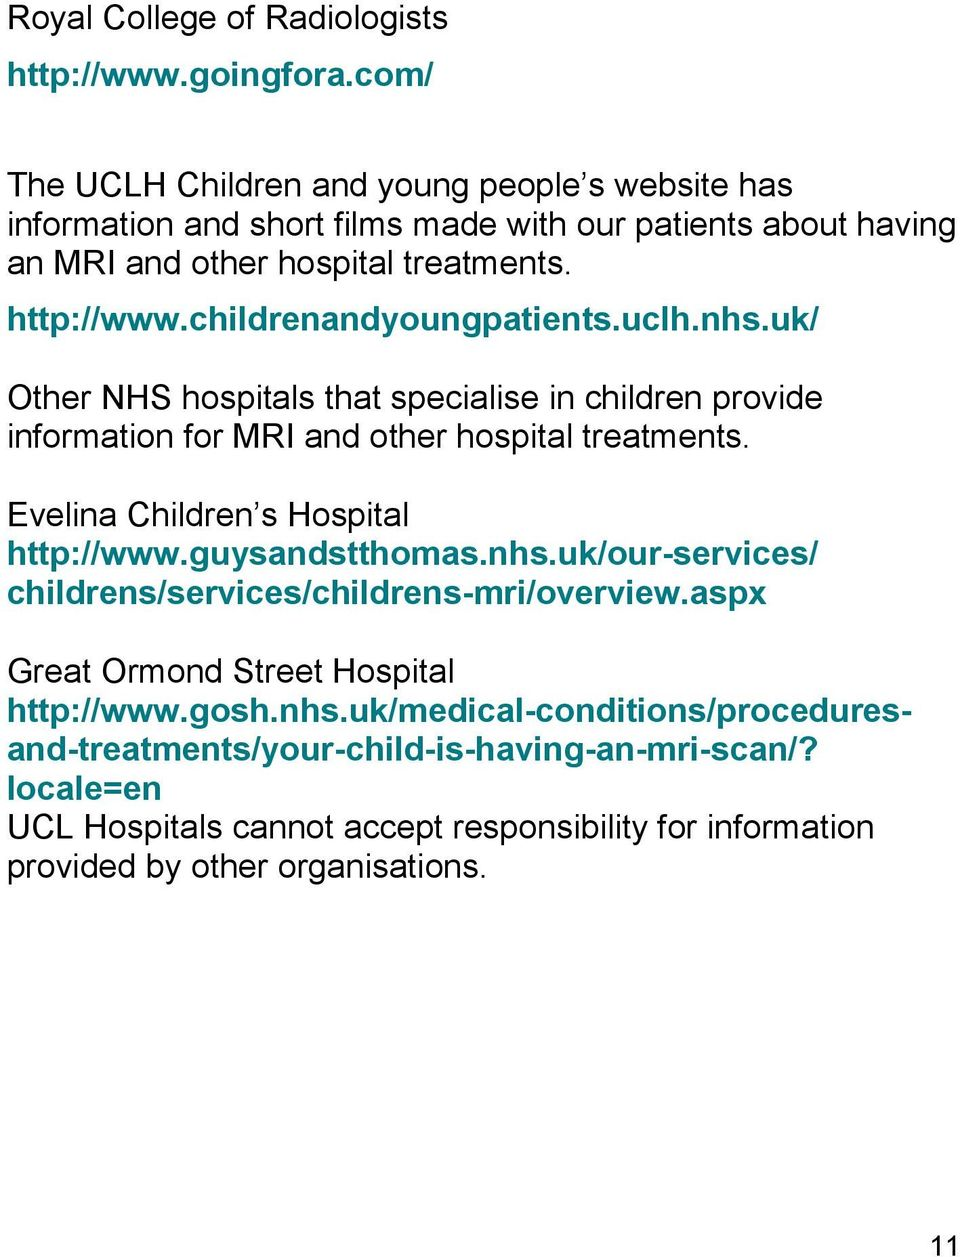 childrenandyoungpatients.uclh.nhs.uk/ Other NHS hospitals that specialise in children provide information for MRI and other hospital treatments.